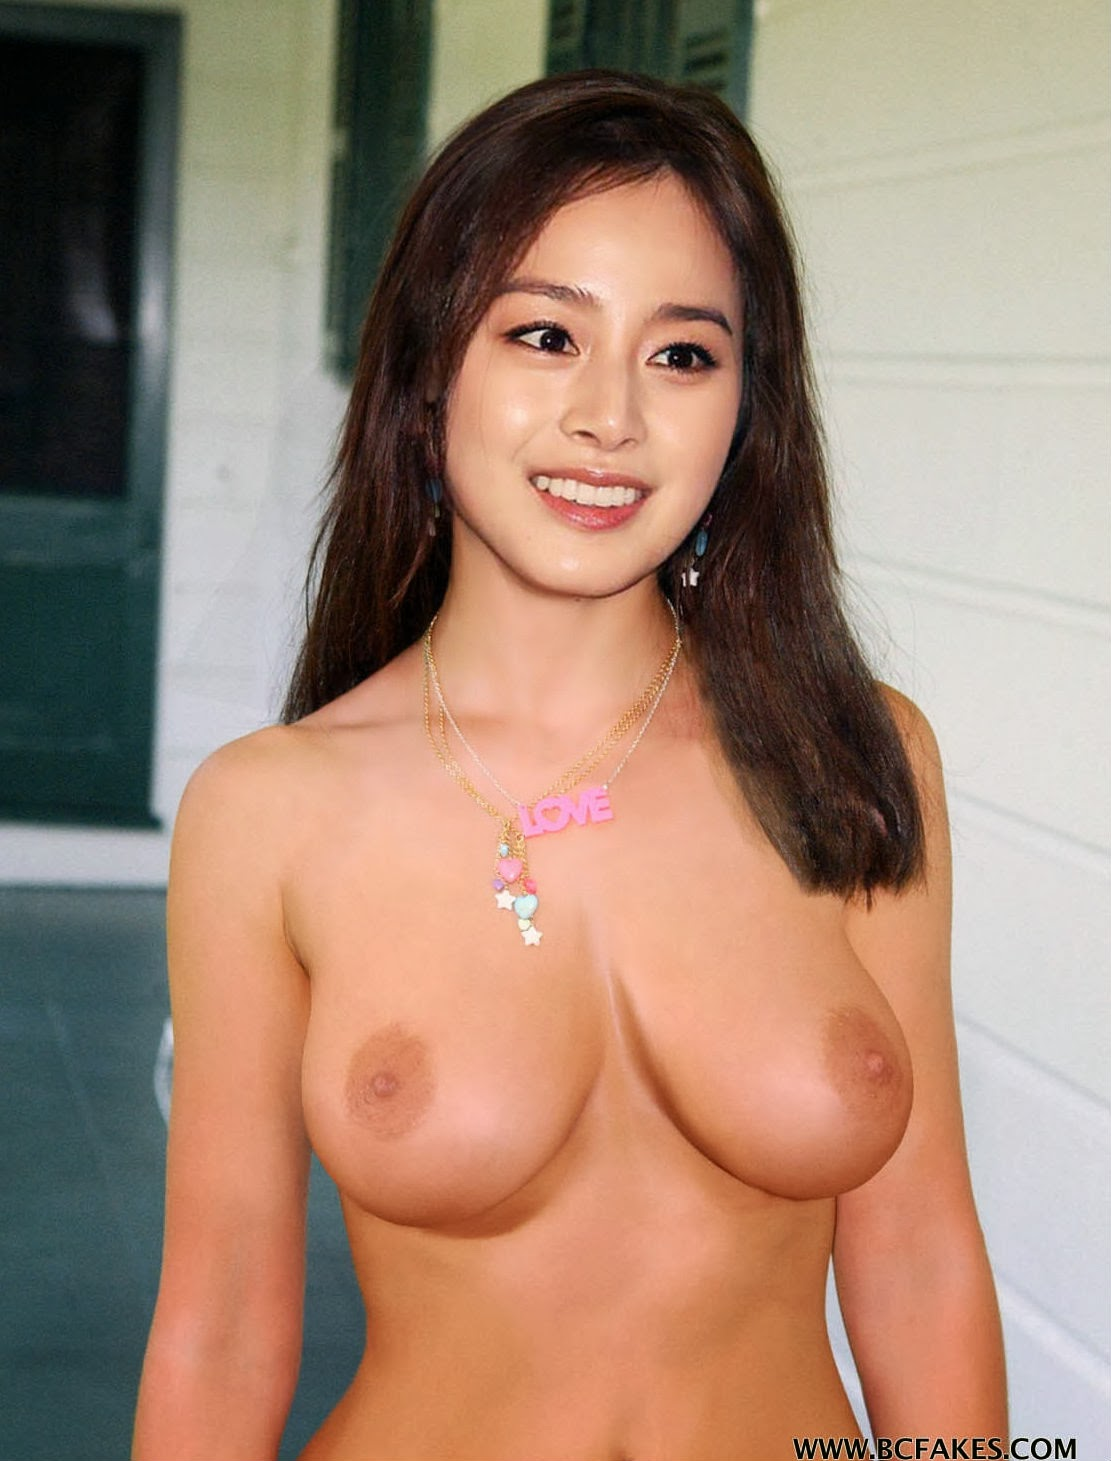 Joo min lee vintage asian anal 9